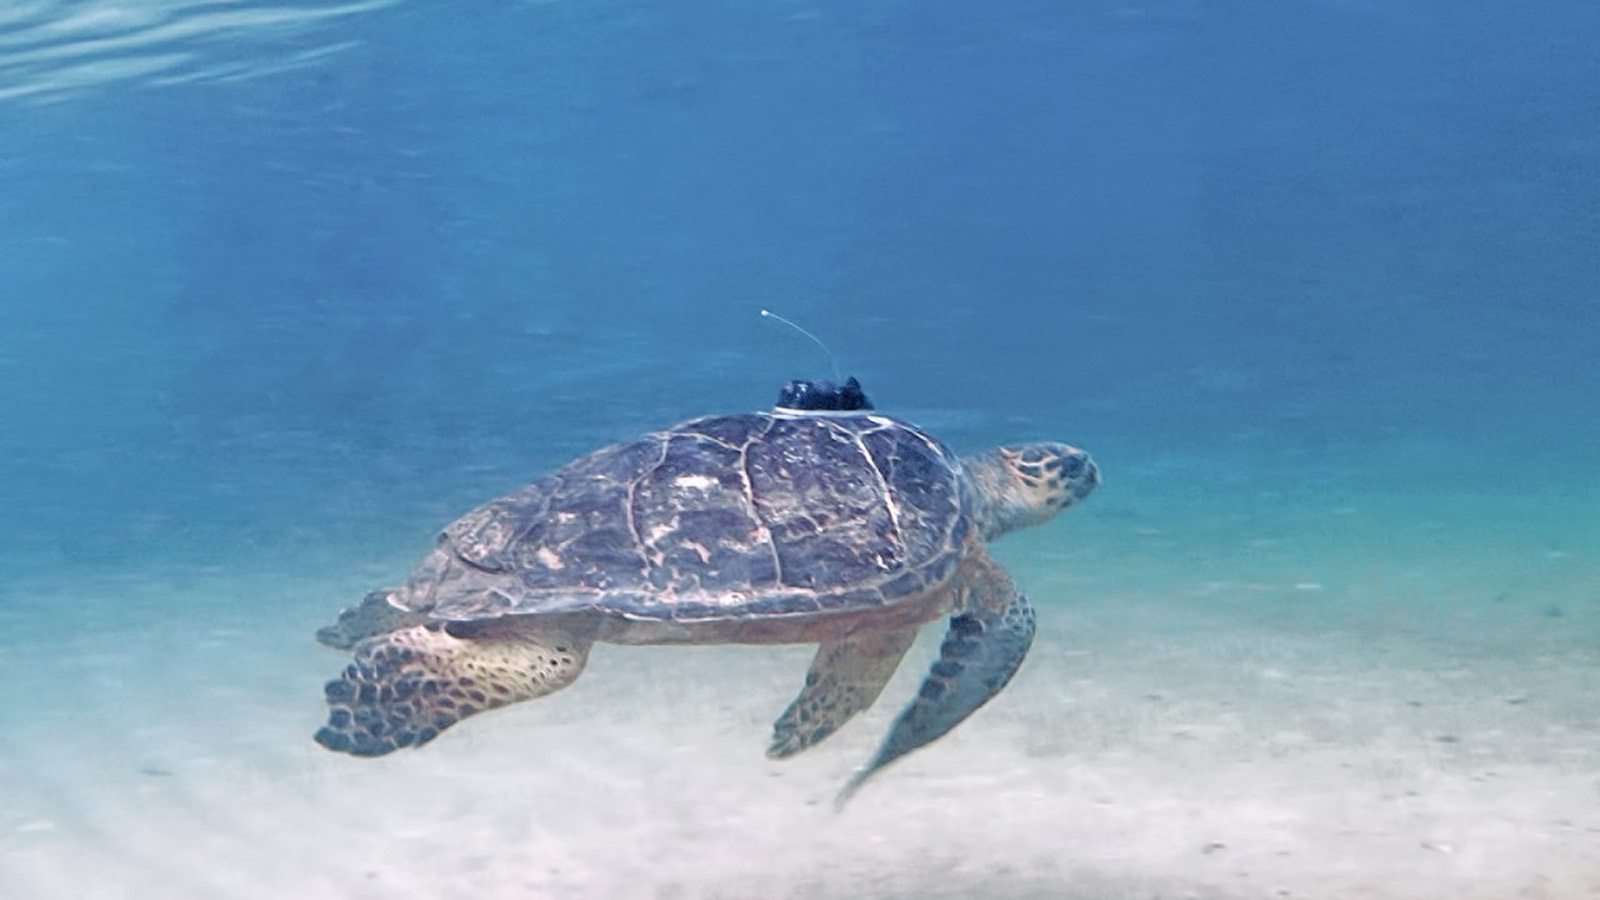 Sea turtle conservancy clipart vector download Four Seasons Resort Nevis and Sea Turtle Conservancy ... vector download